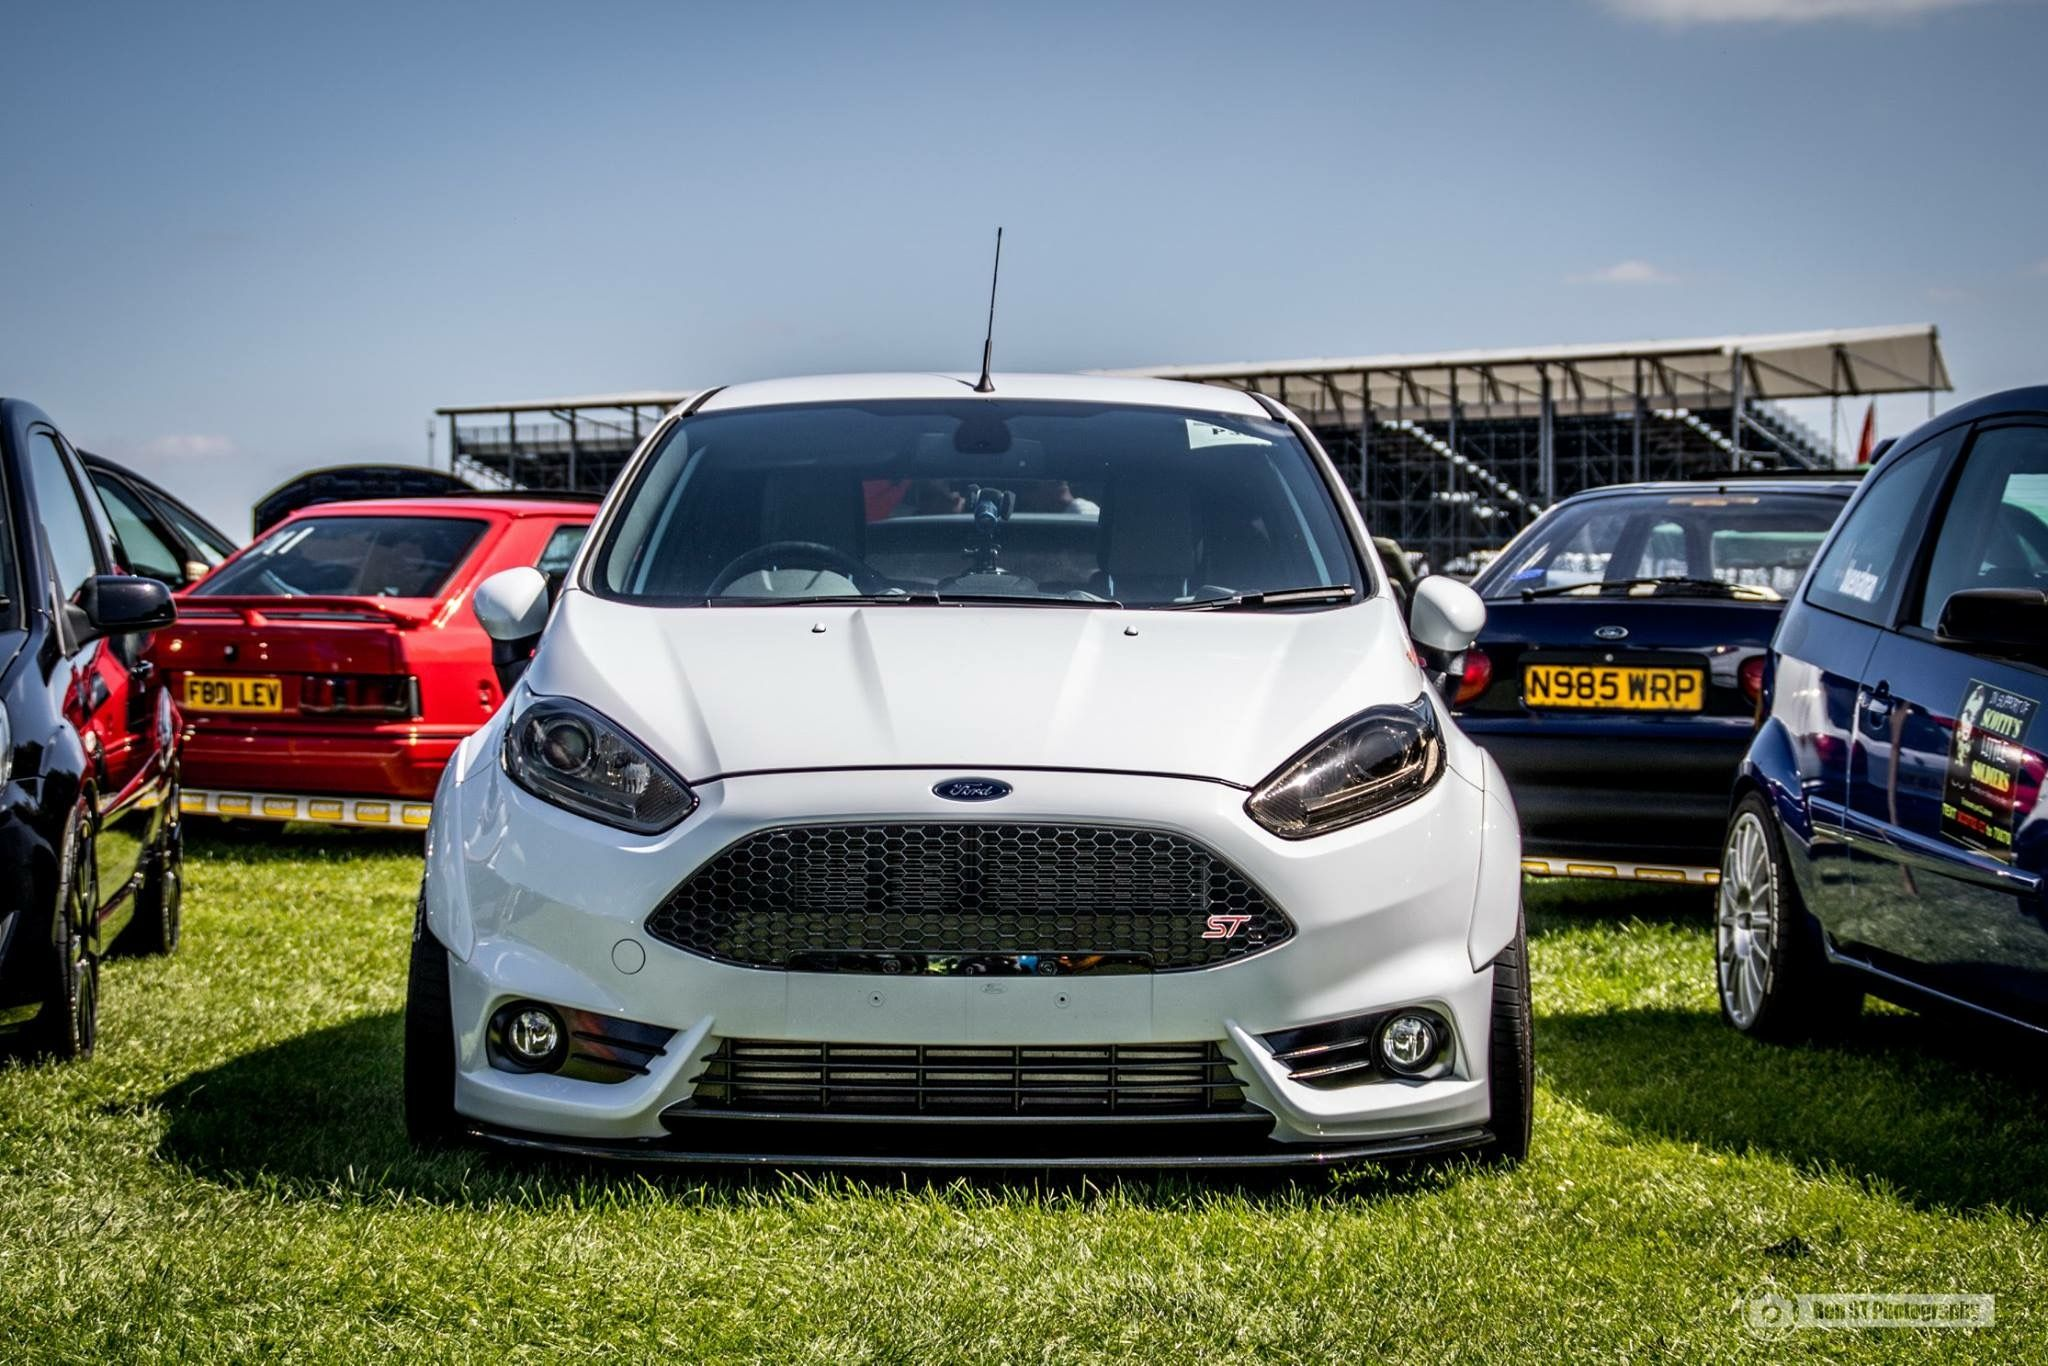 Pin By Tony Block On Cool Cars Ford Fiesta St Ford Fiesta Ford